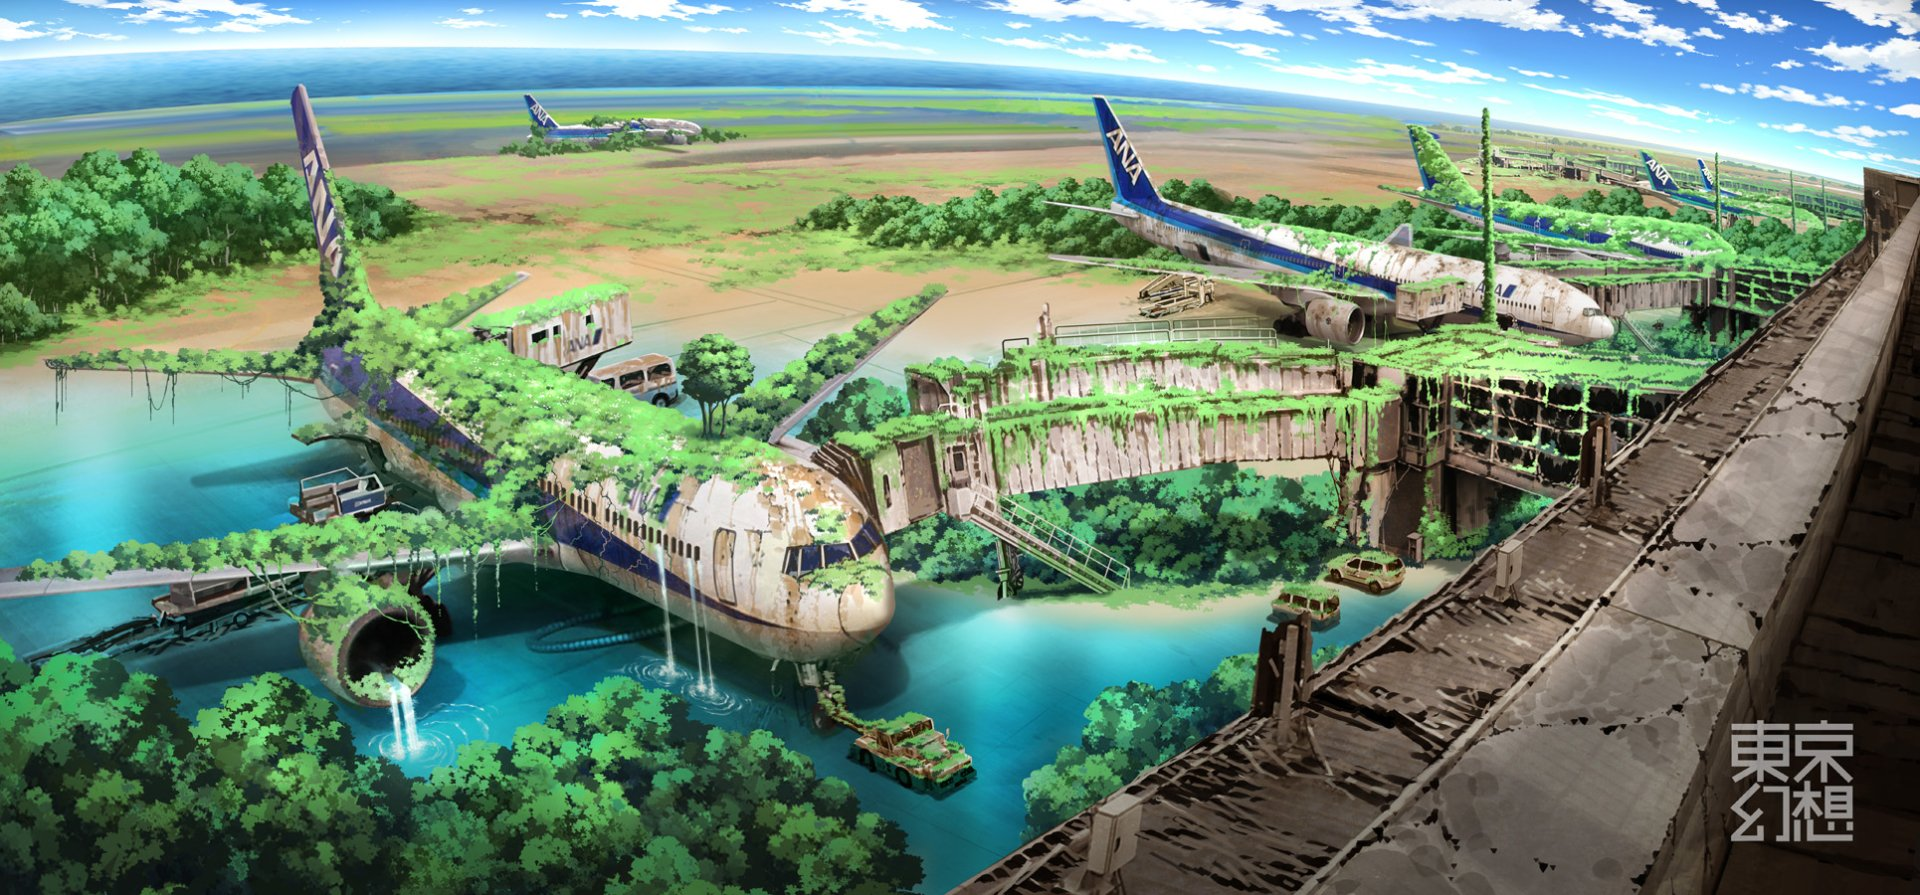 Sci Fi - Post Apocalyptic  Forest Grass Water Jet Airplane Airport Wallpaper